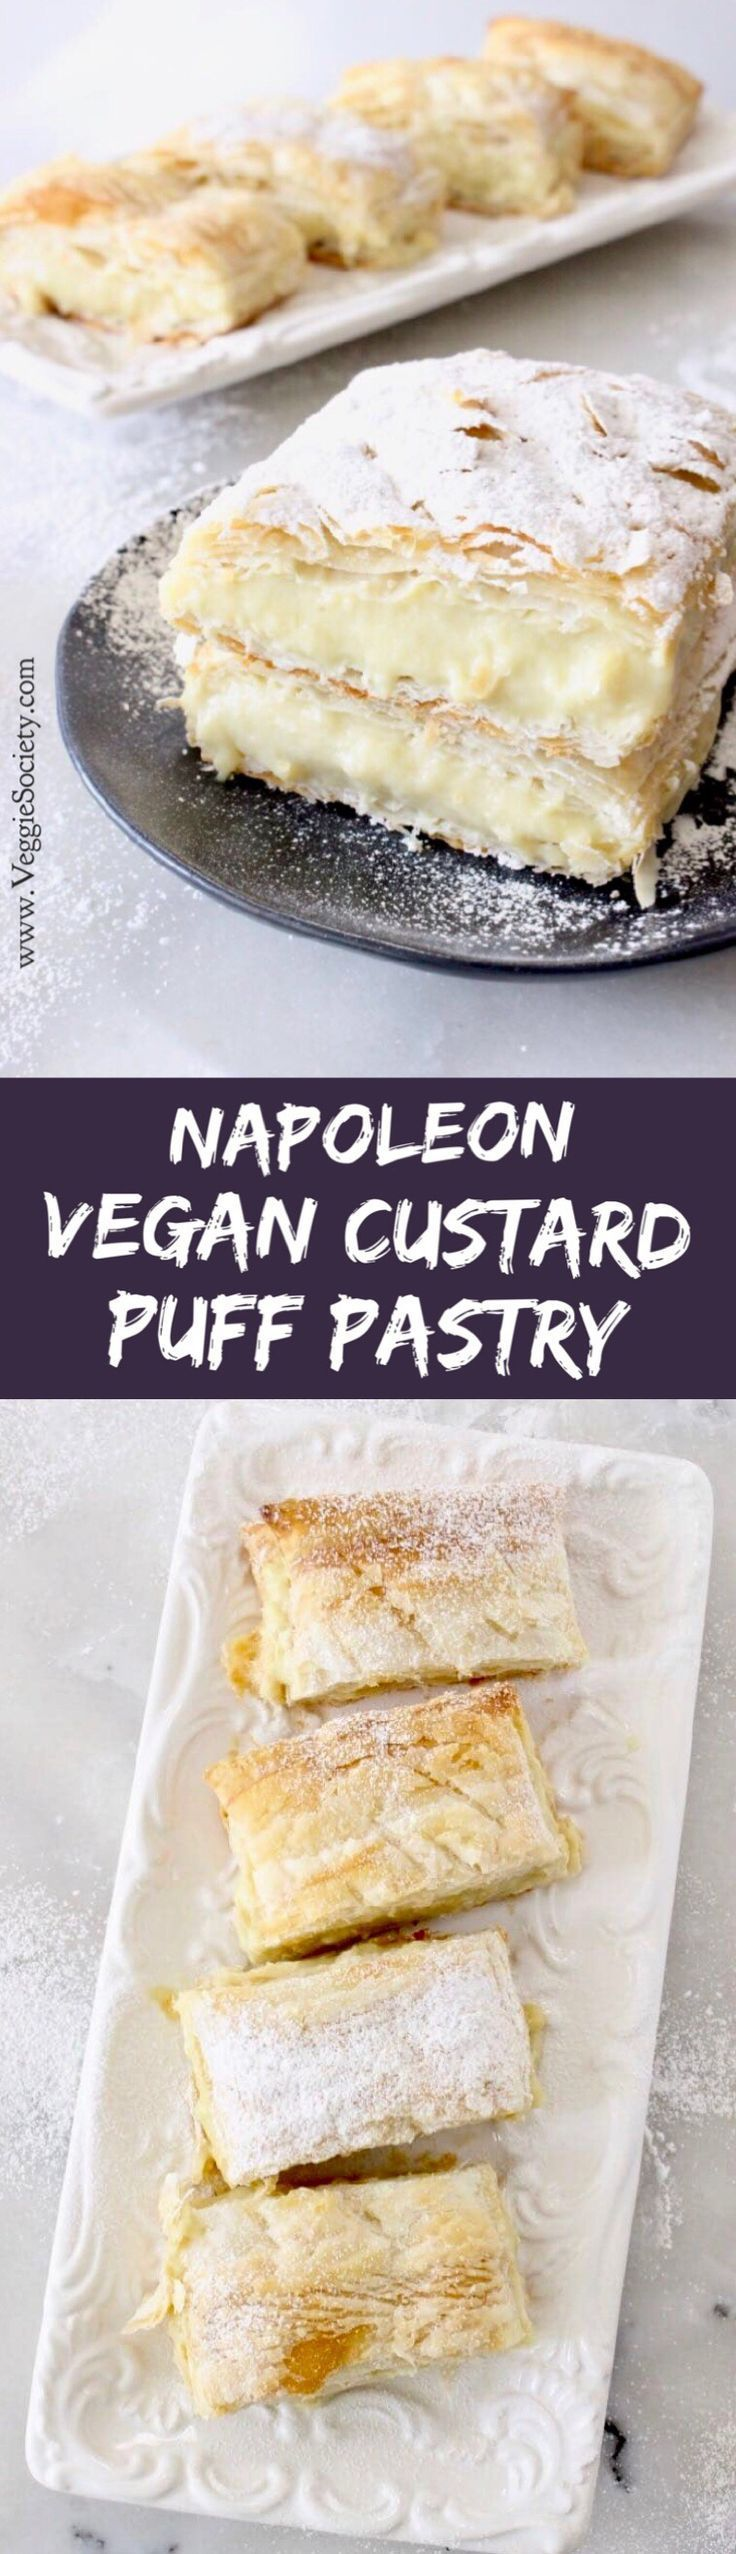 Easy vegan custard puff pastry made with rich coconut and cashew milk, vanilla and tapioca #vegandesserts #plantbased #easyrecipe #puffpastry